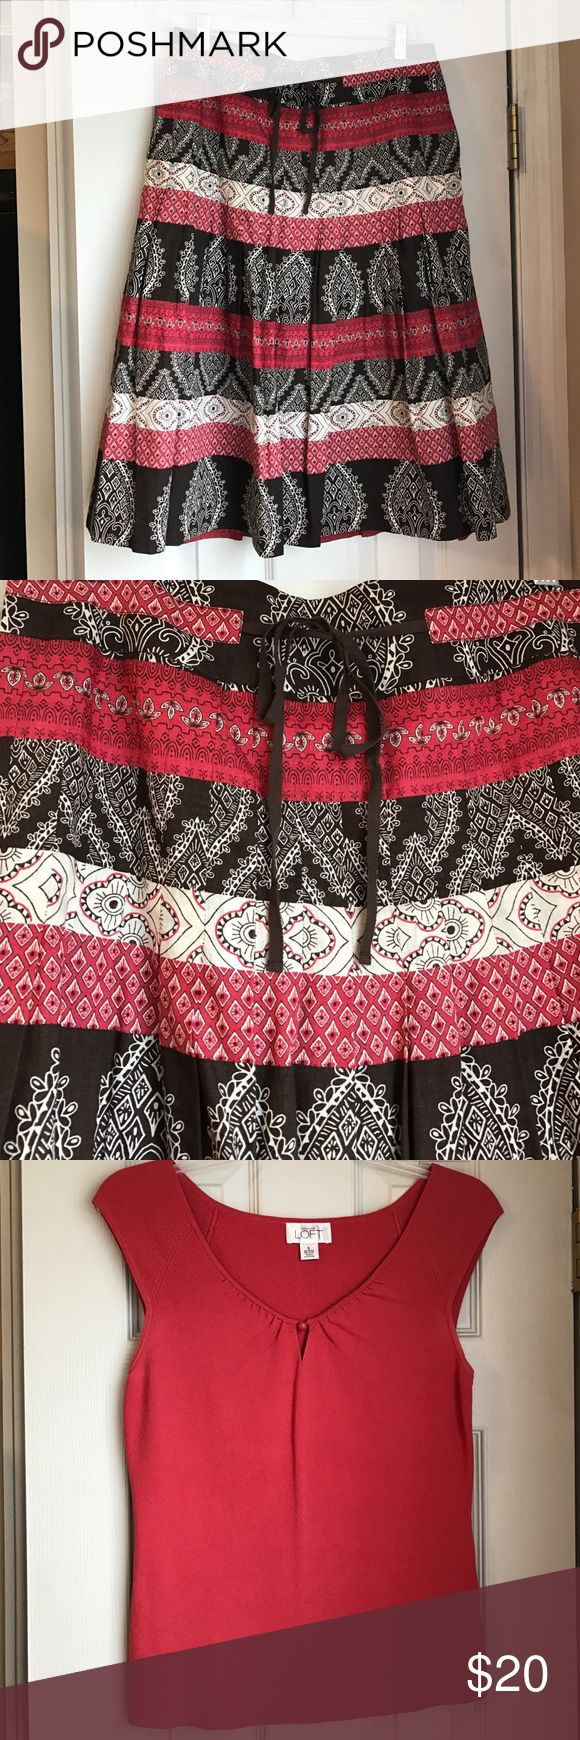 """Coordinating skirt and top Darling printed """"batik"""" style skirt (brown, cream, and geranium) with coordinating geranium colored sweater.  Skirt is size 4 and sweater is size small.  Both by LOFT LOFT Skirts A-Line or Full"""